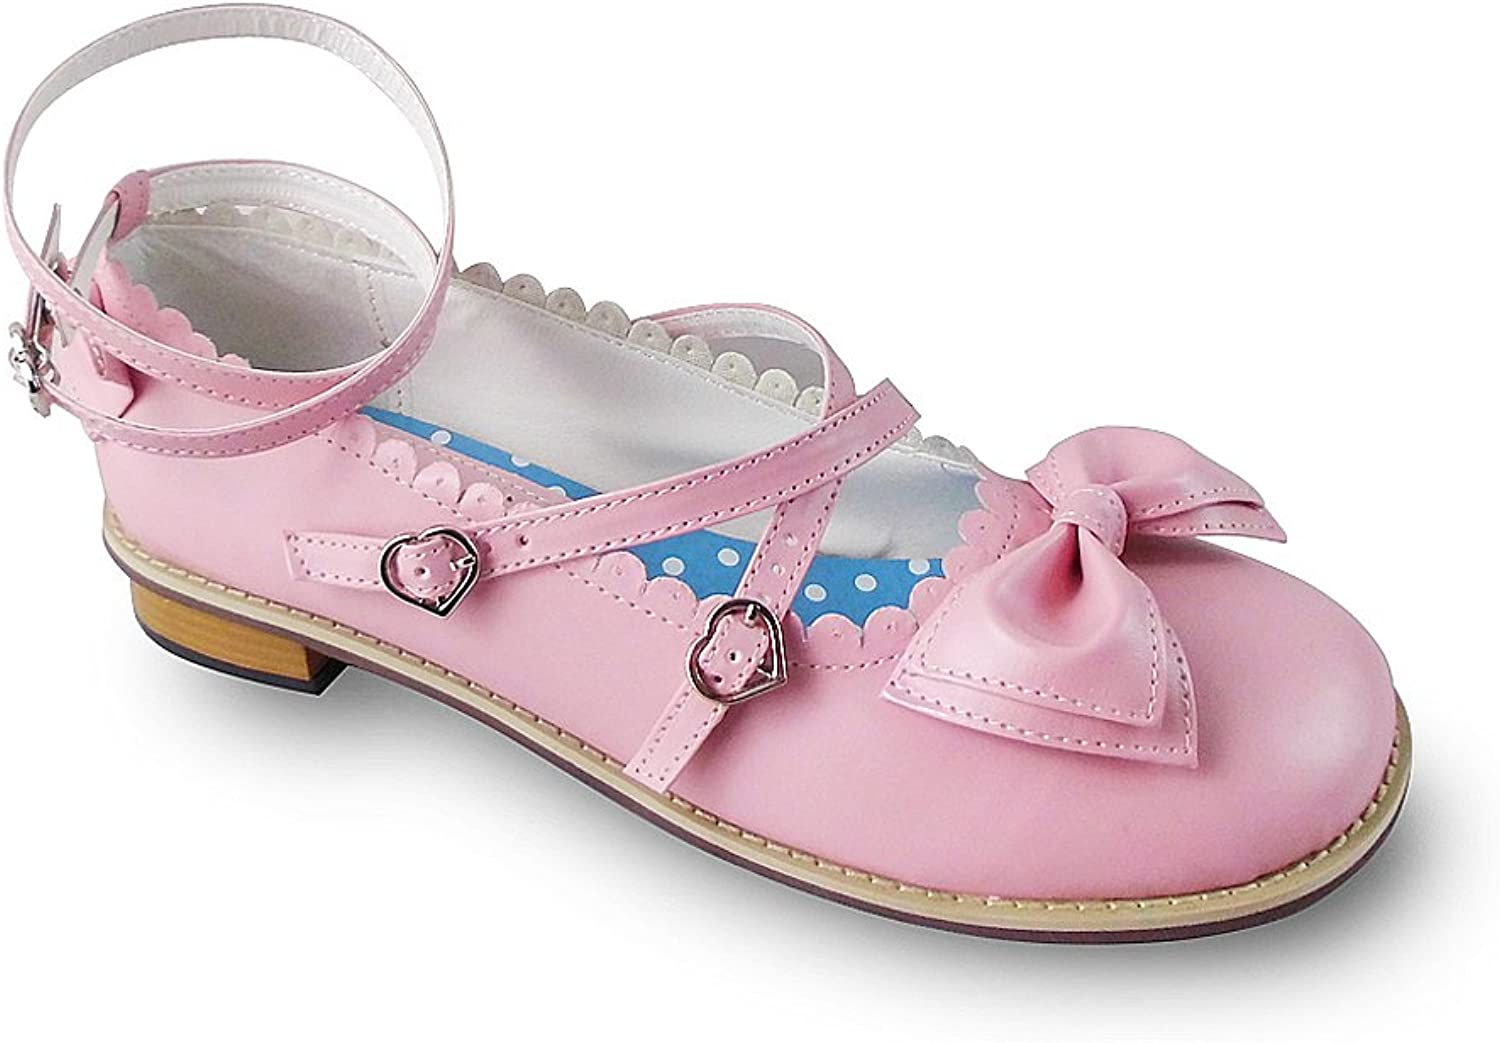 Antaina Low Heel Pink Round Toe Bow Sweet Lolita Casual Dress Flats shoes